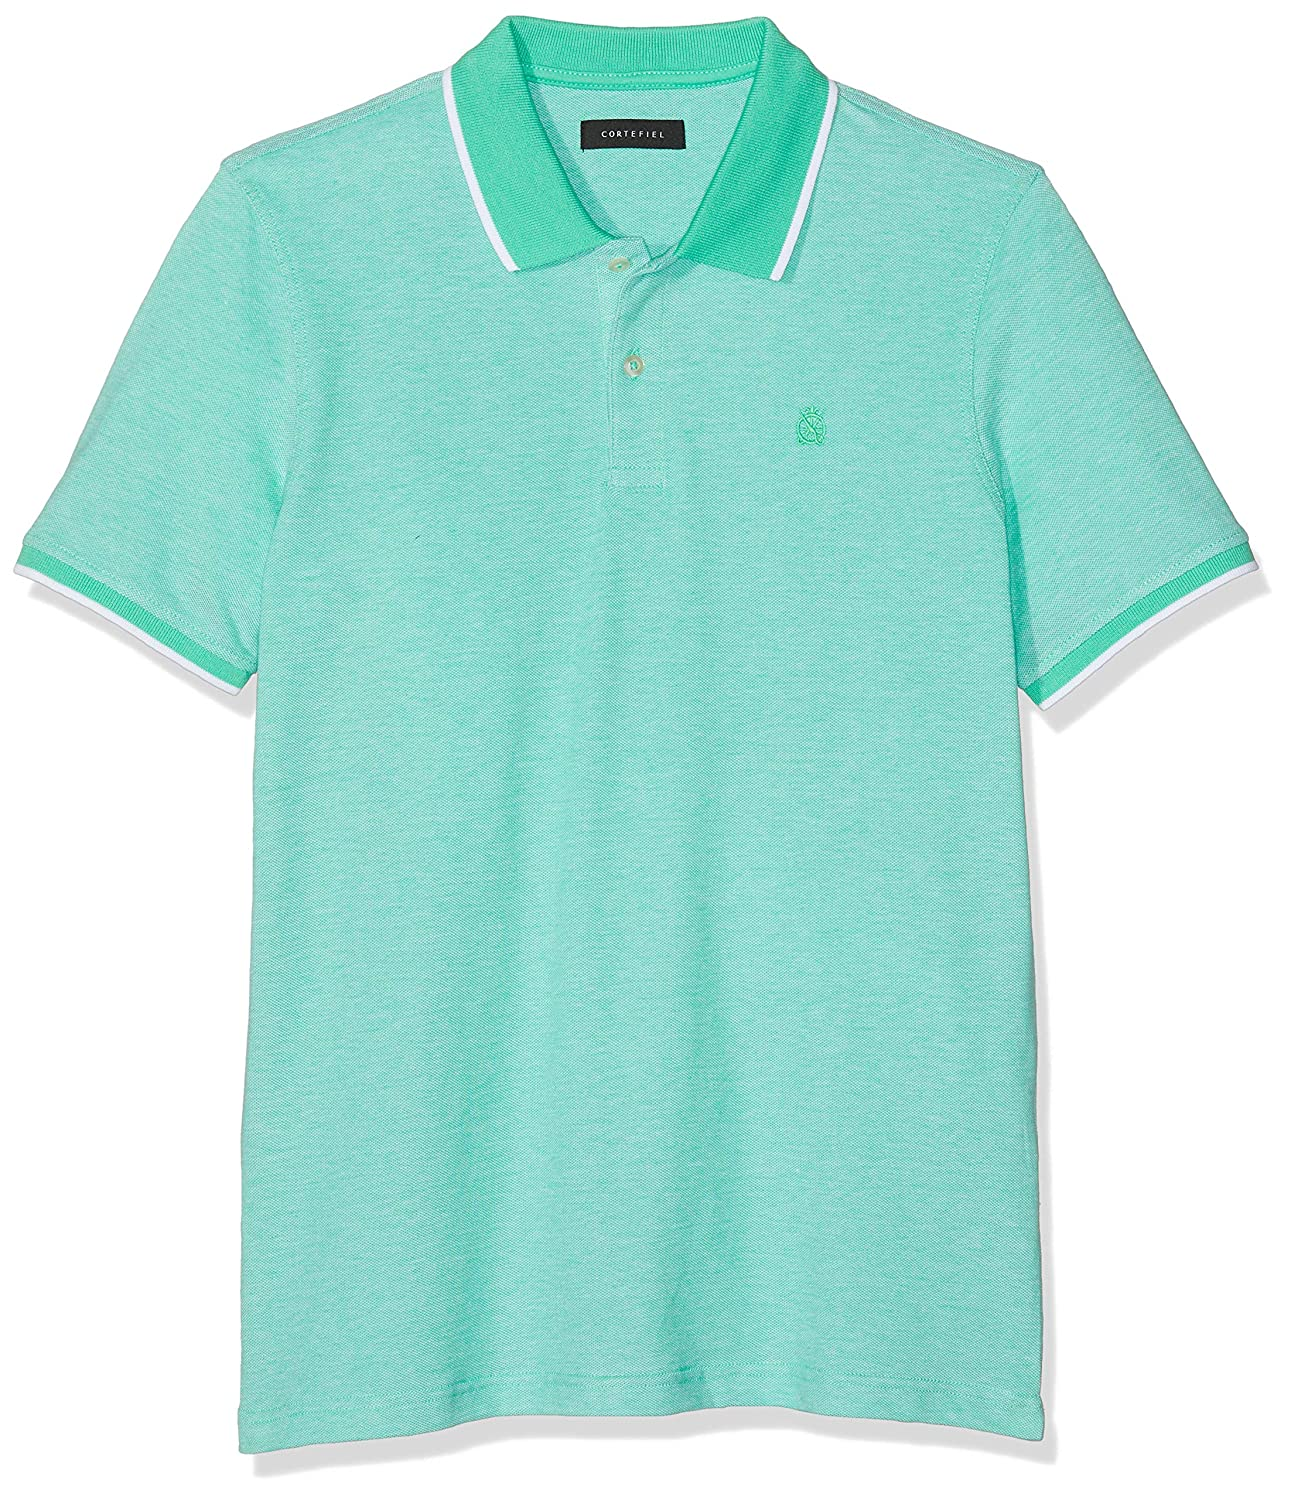 Cortefiel C5Bck Polo Oxford, Verde (Verde Oscuro 20), Large ...